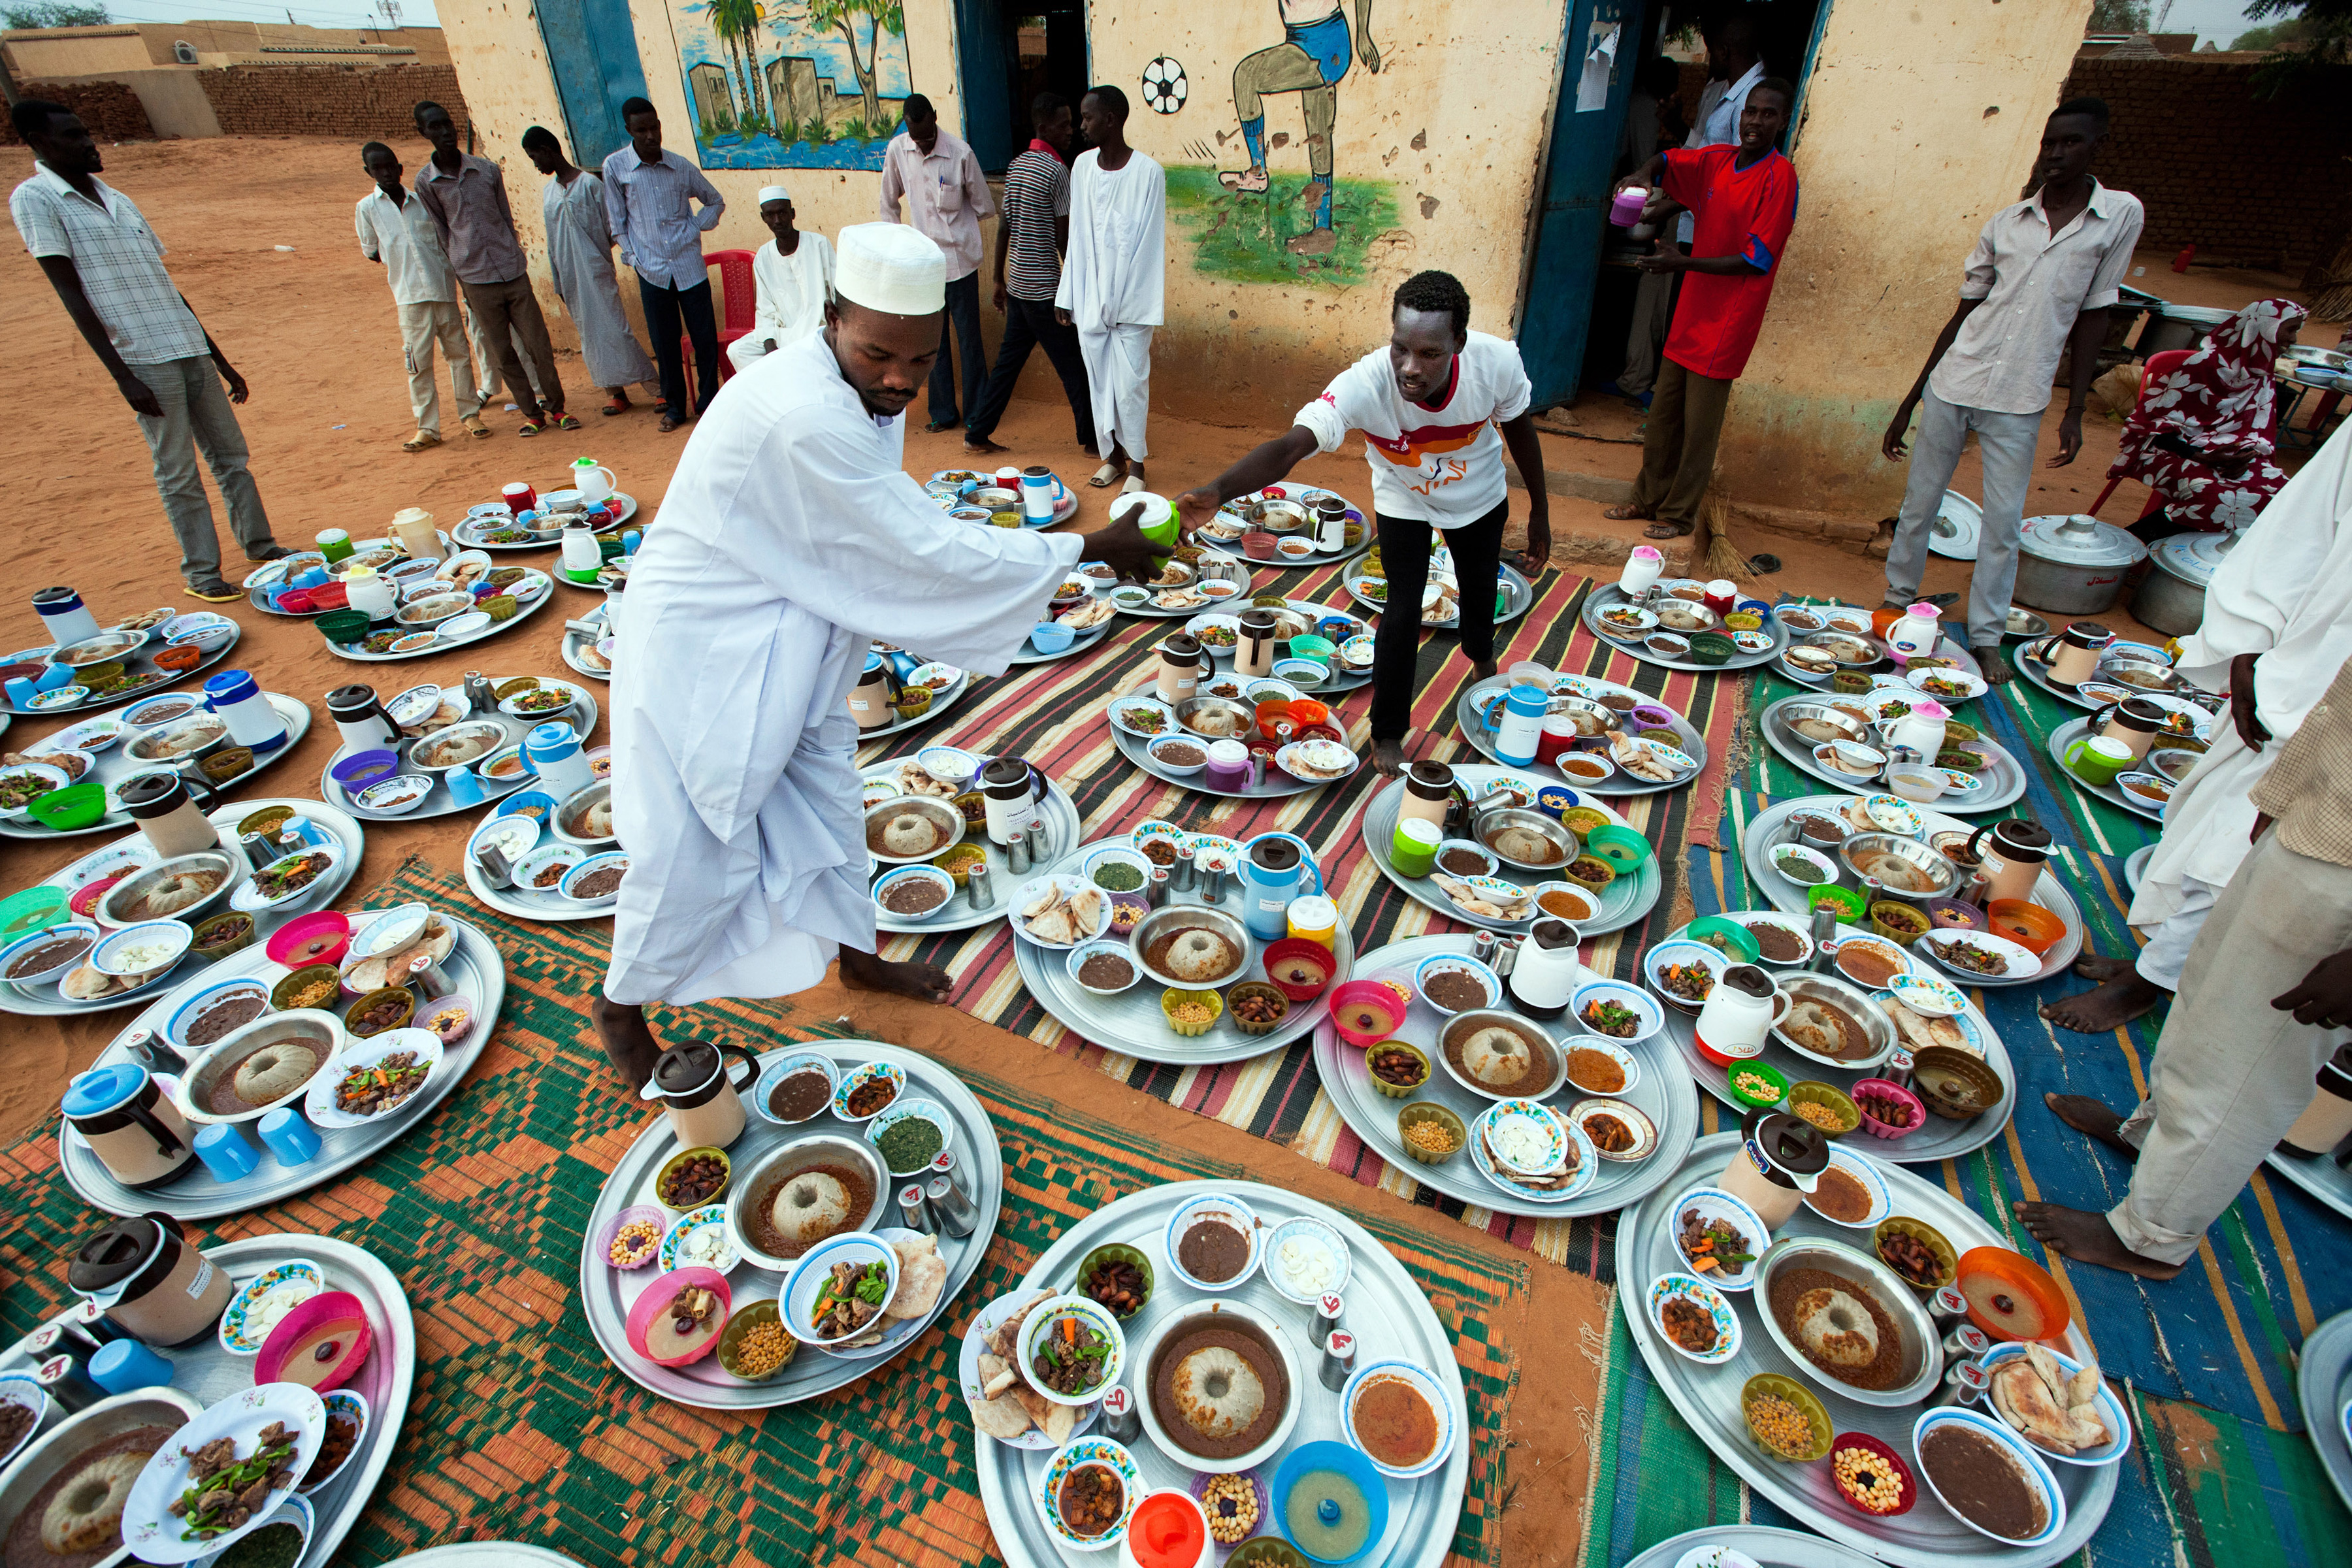 UNAMID Sponsors Iftar for Hundreds in El Fasher